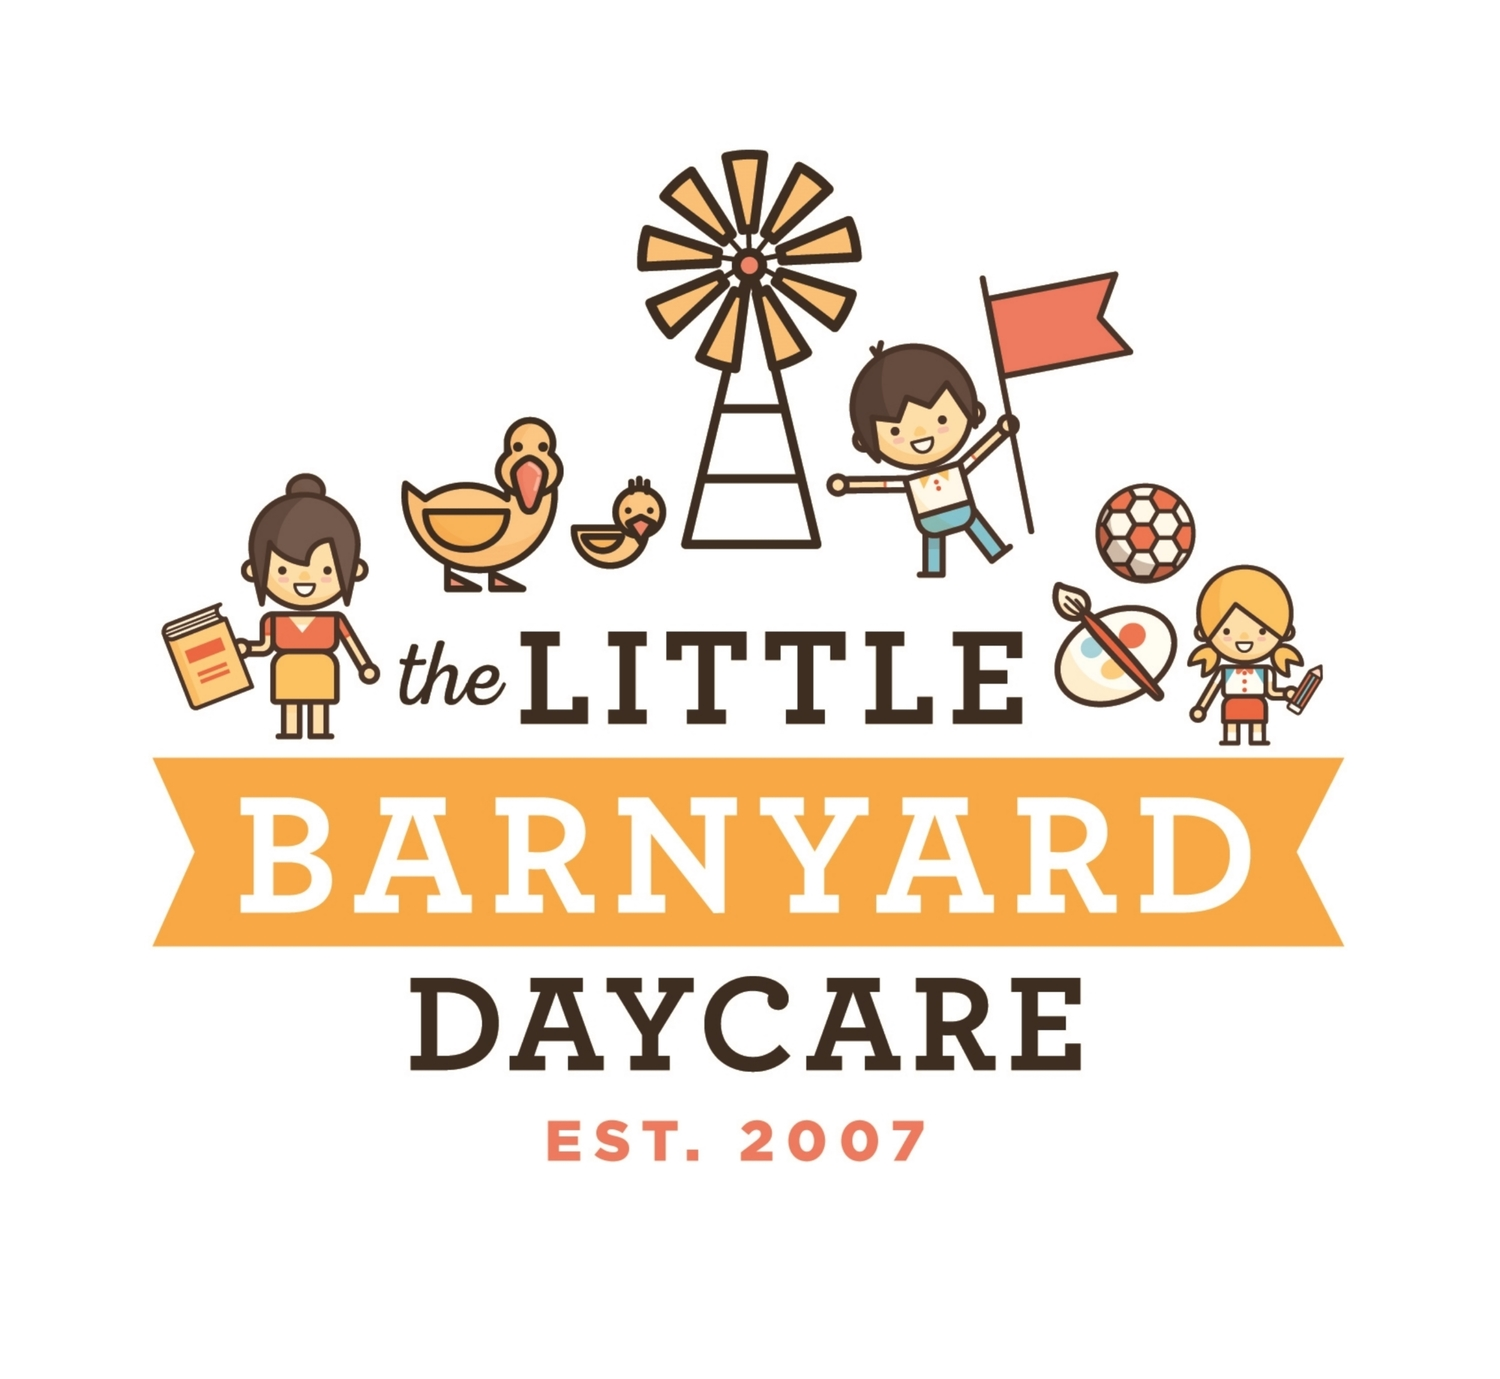 The Little Barnyard Daycare